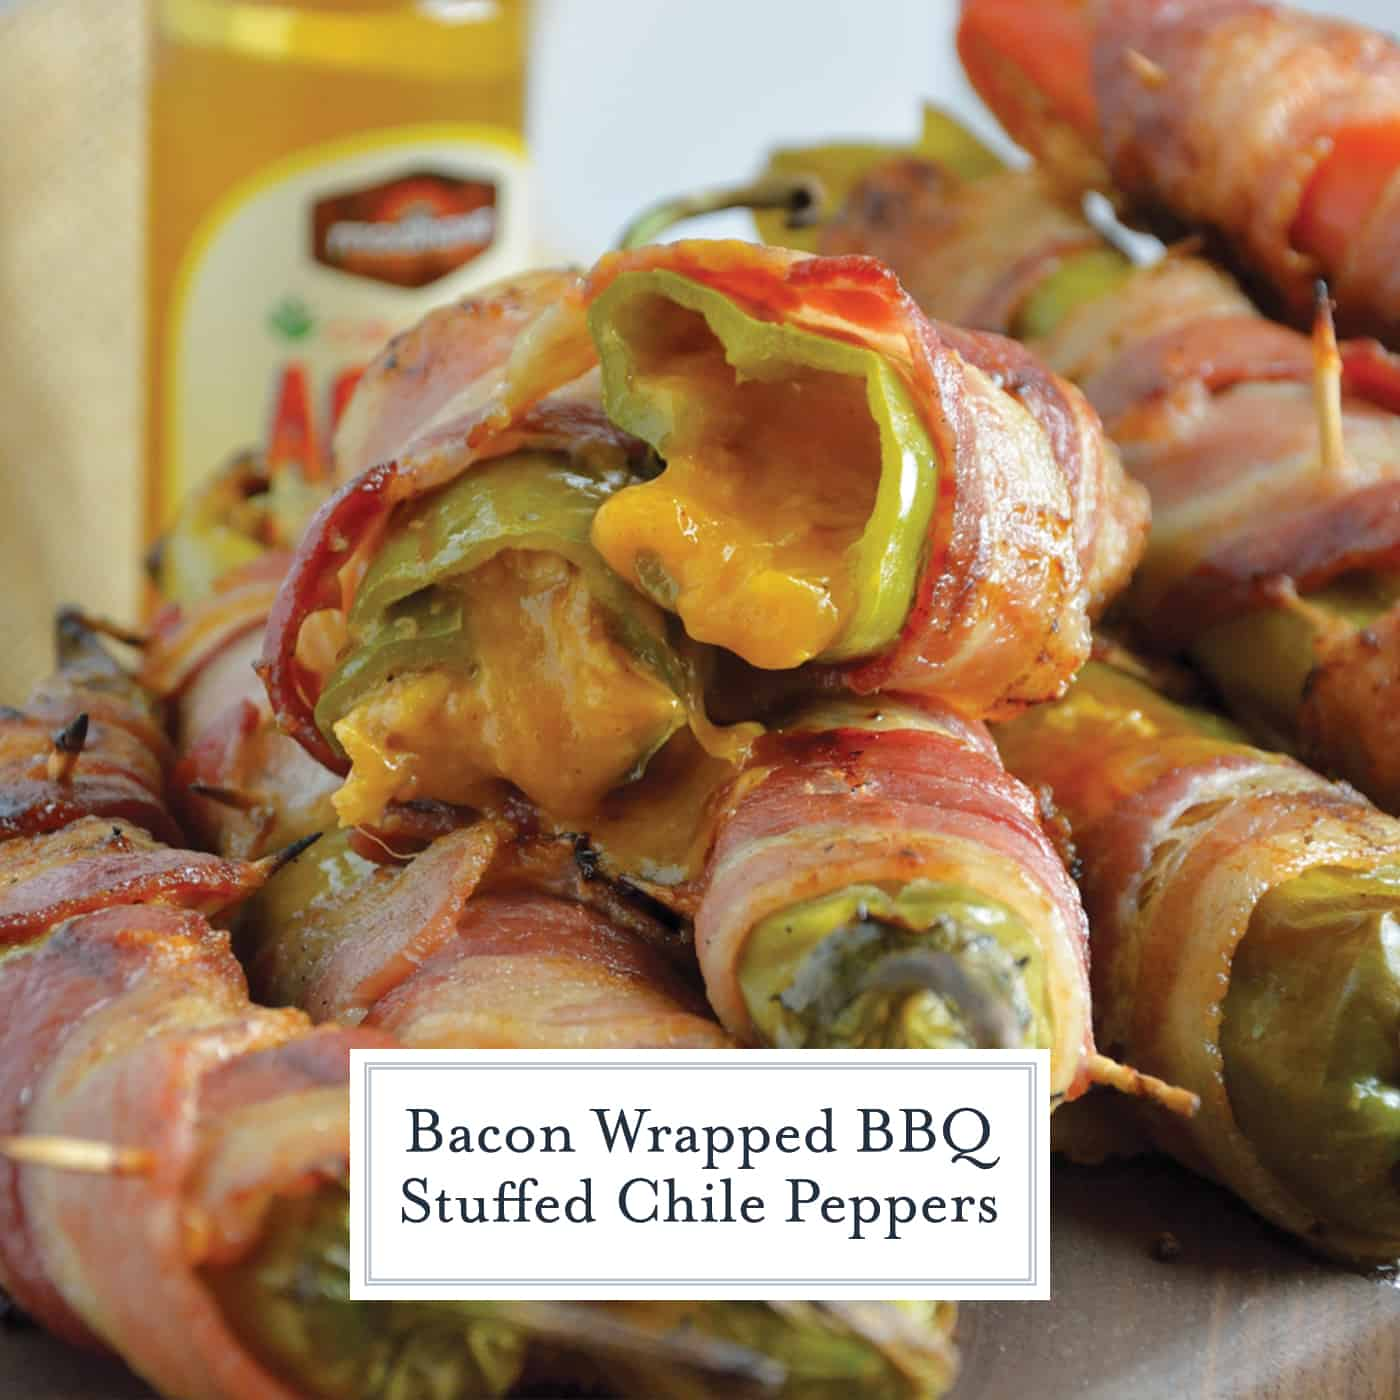 Bacon Wrapped BBQ Chicken Stuffed Chile Peppers are the ultimate BBQ Chicken recipe. Tender shredded chicken stuff in a chile pepper, wrapped in bacon and drizzled with sweet agave nectar. #BBQchicken #stuffedchilepeppers www.savoryexperiments.com